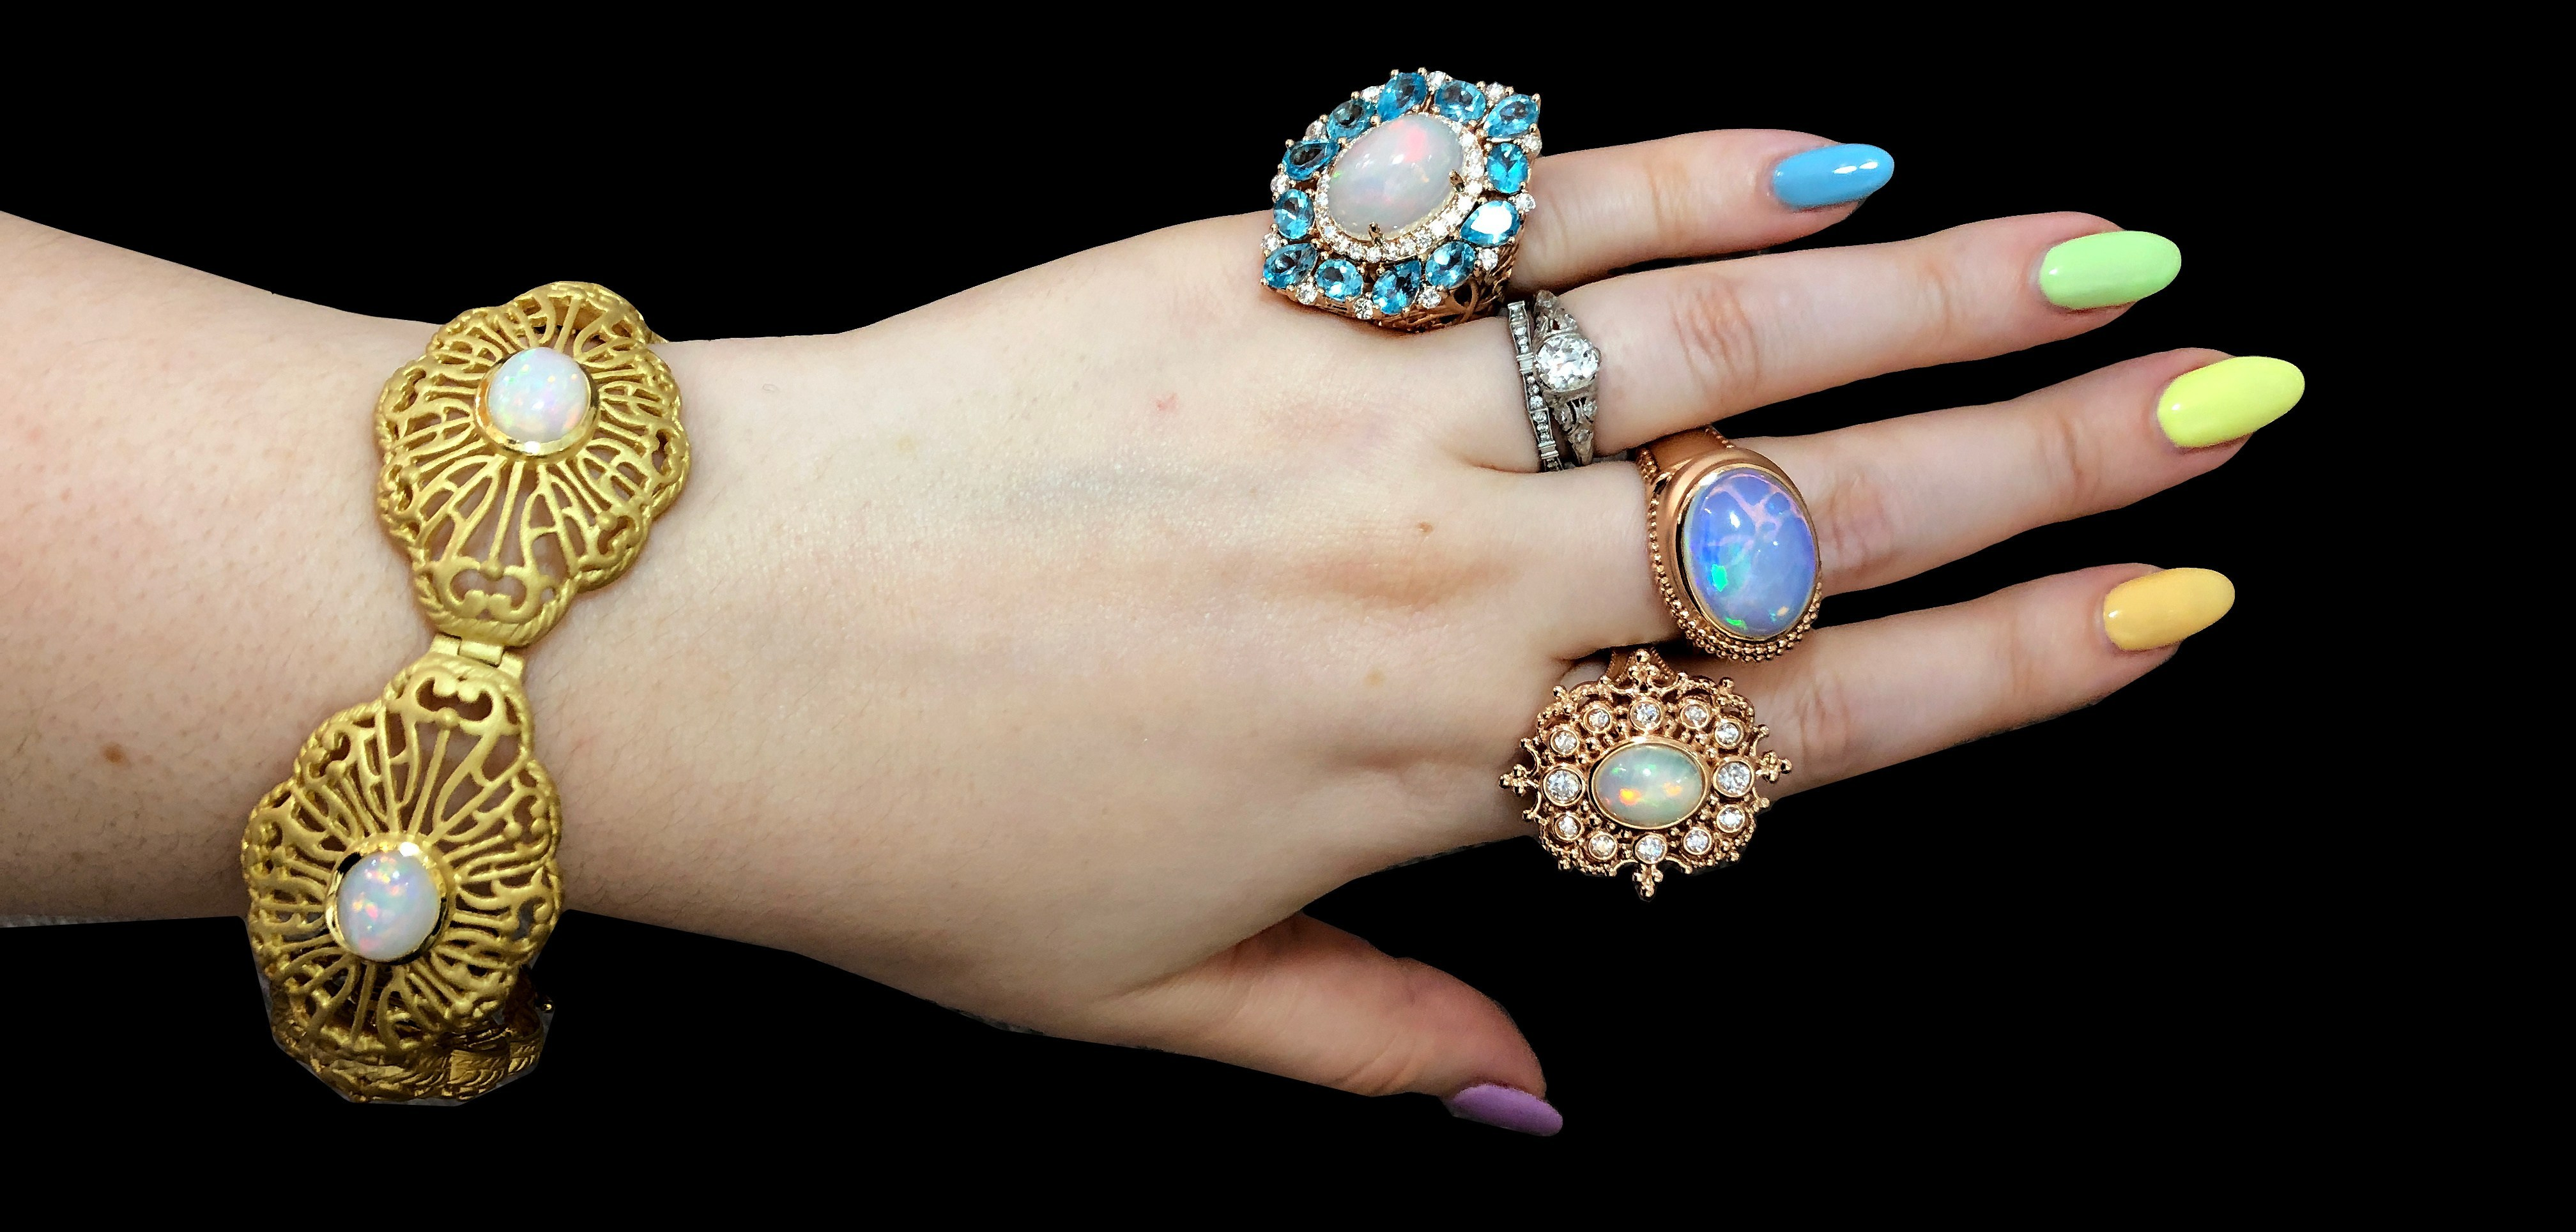 Beautiful colored gemstone jewels by Dallas Prince Designs!